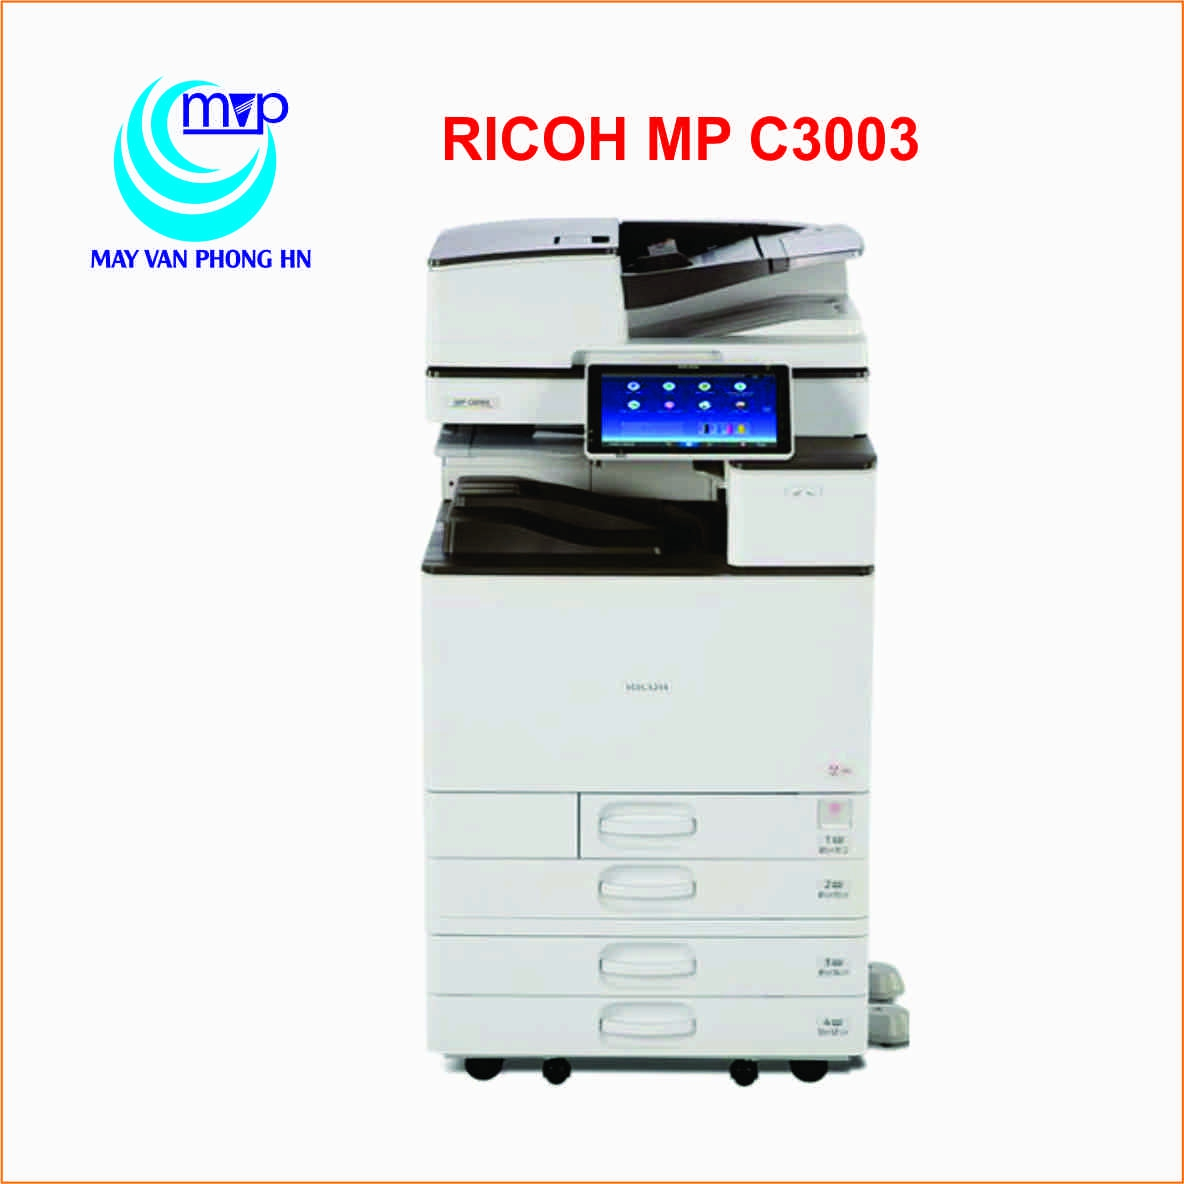 RICOH MP C3003